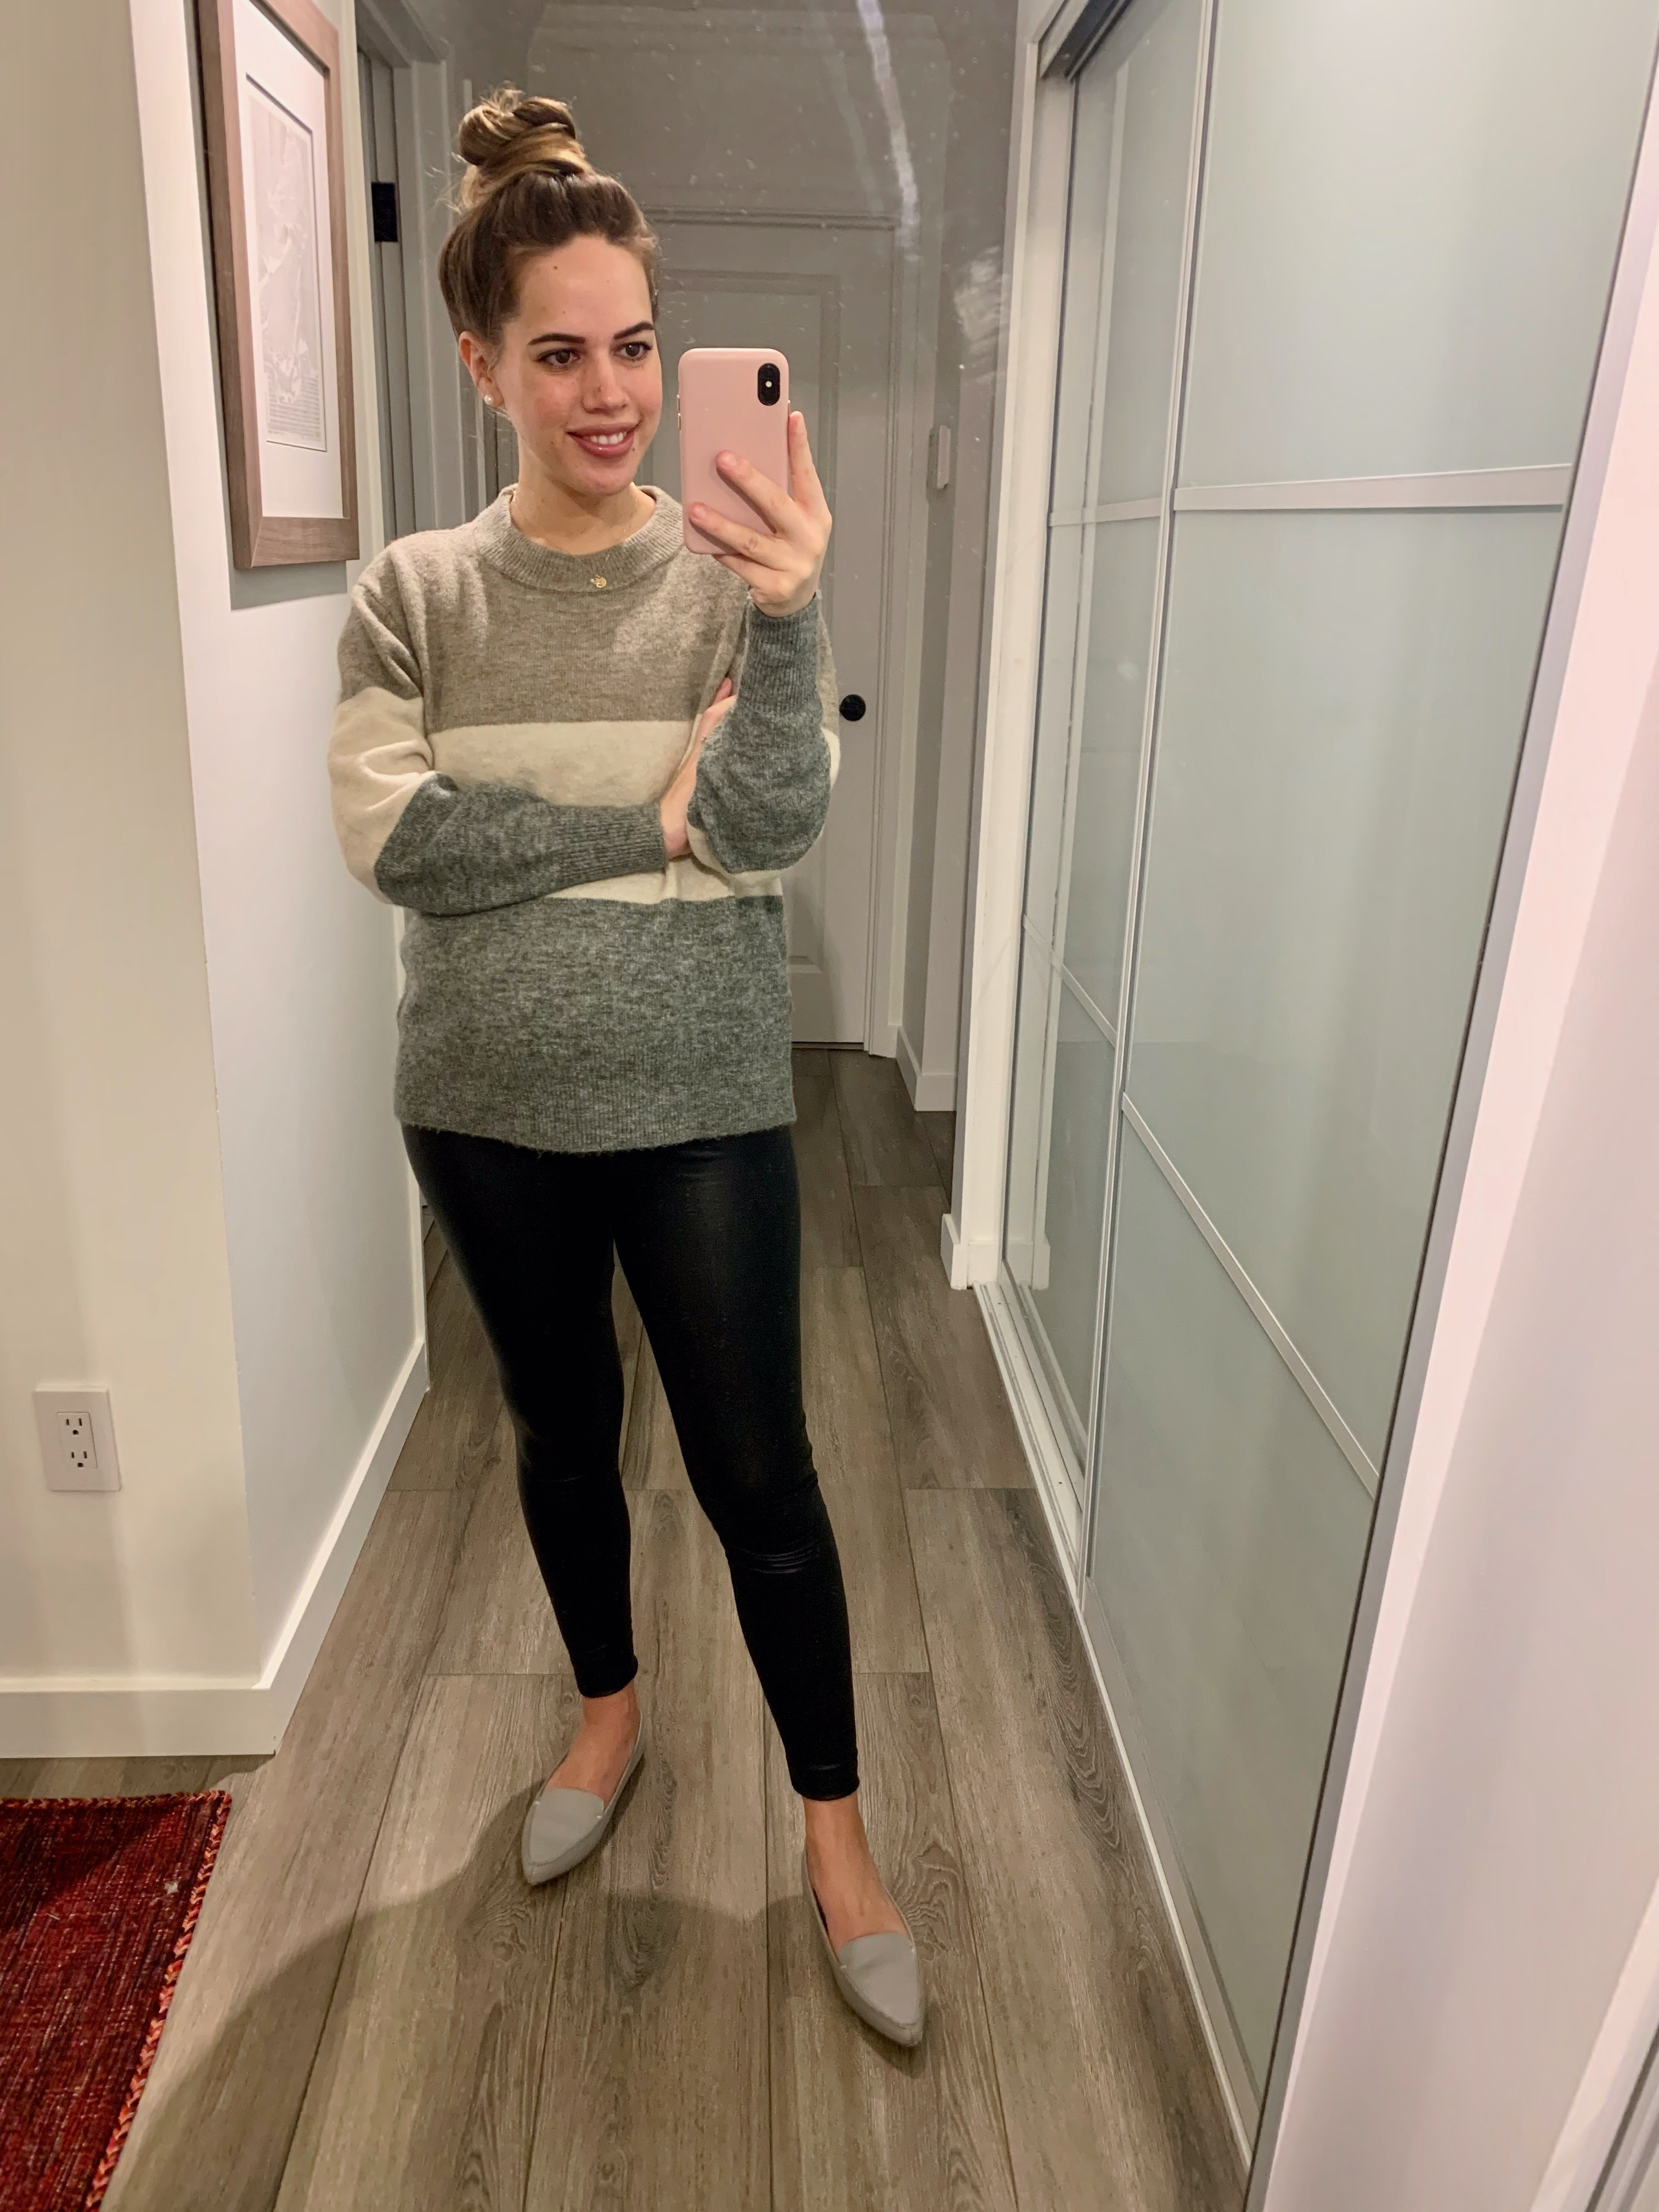 Jules in Flats - Faux Leather Leggings + Colour Block Sweater (Business Casual Workwear on a Budget)